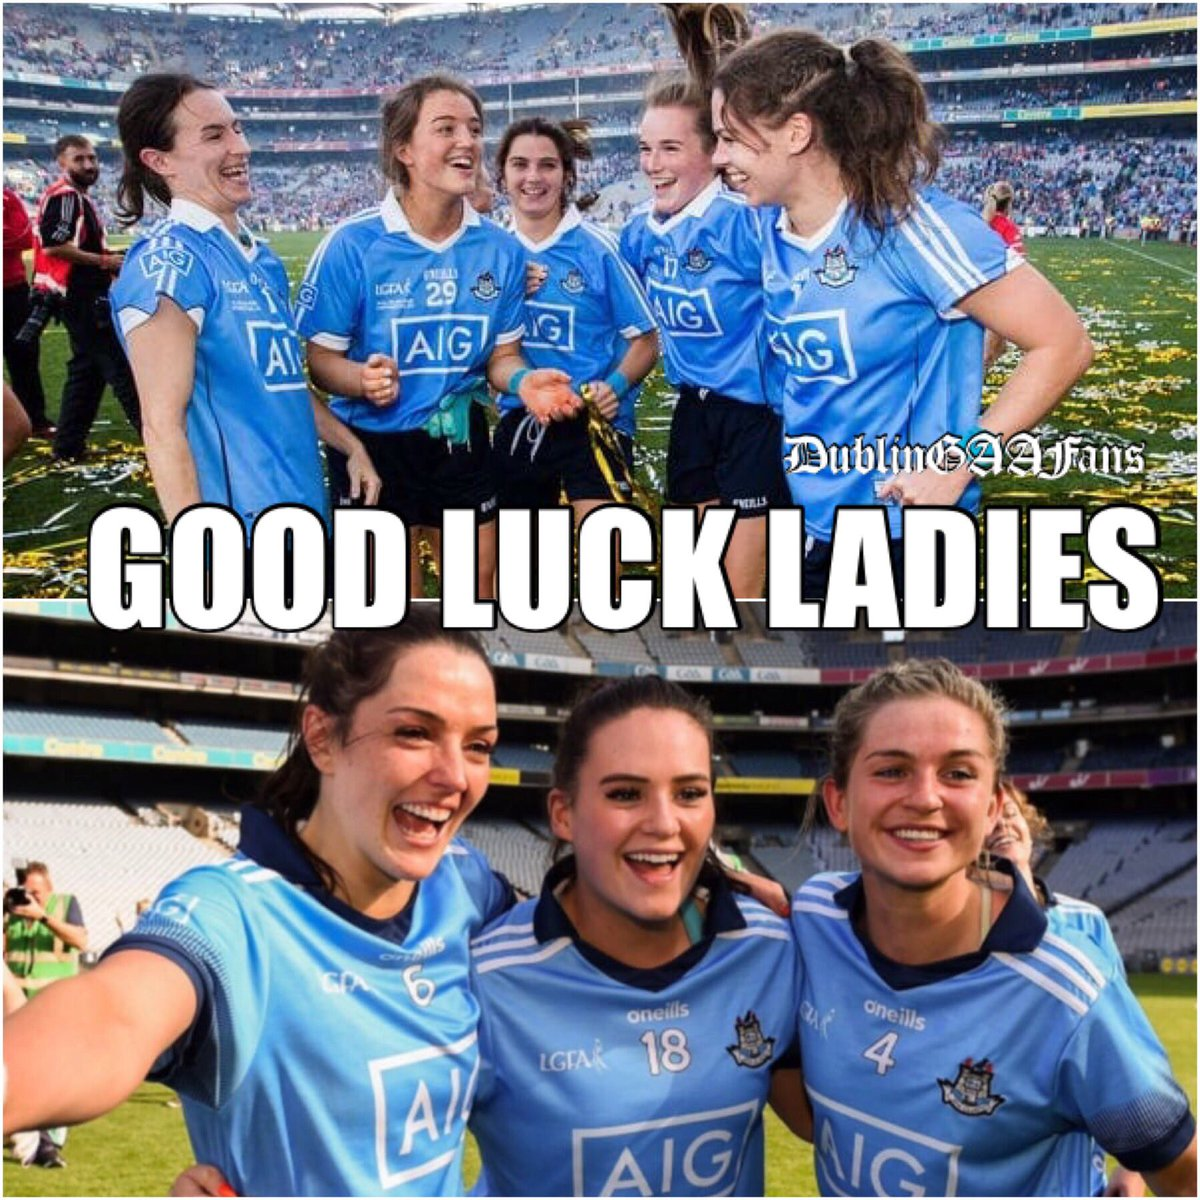 IT'S LADIES' DAY! Wishing the very best of luck to our Girls in Blue as they take on Galway in the All Ireland Final this afternoon. Let's go, 3-in-a-row! #COYGIB